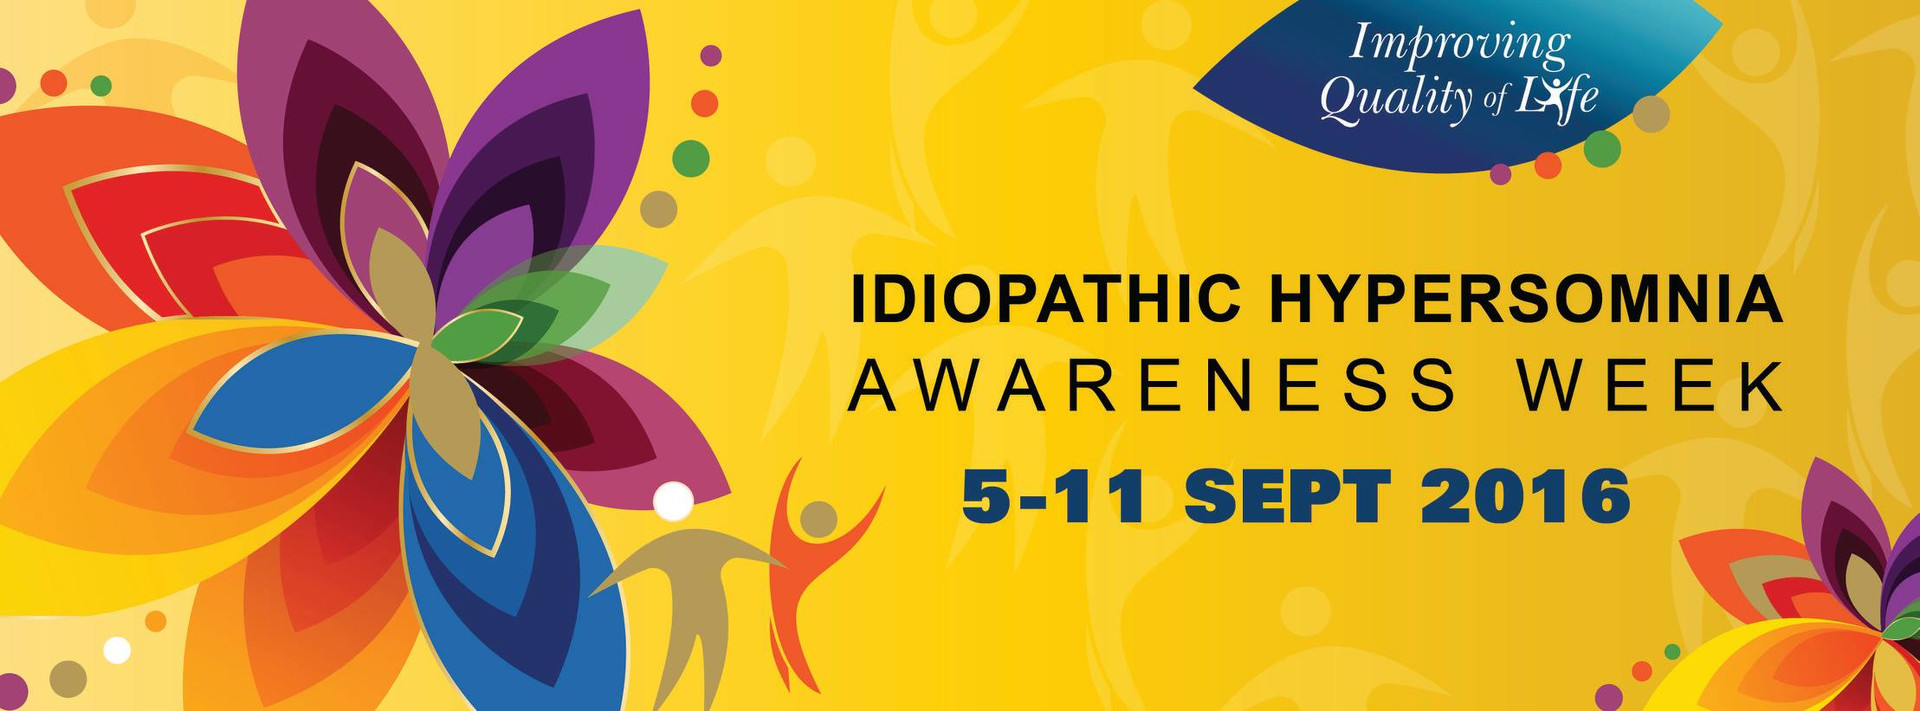 Idiopathic Hypersomnia Awareness Week 2016 Improving Quality of Life